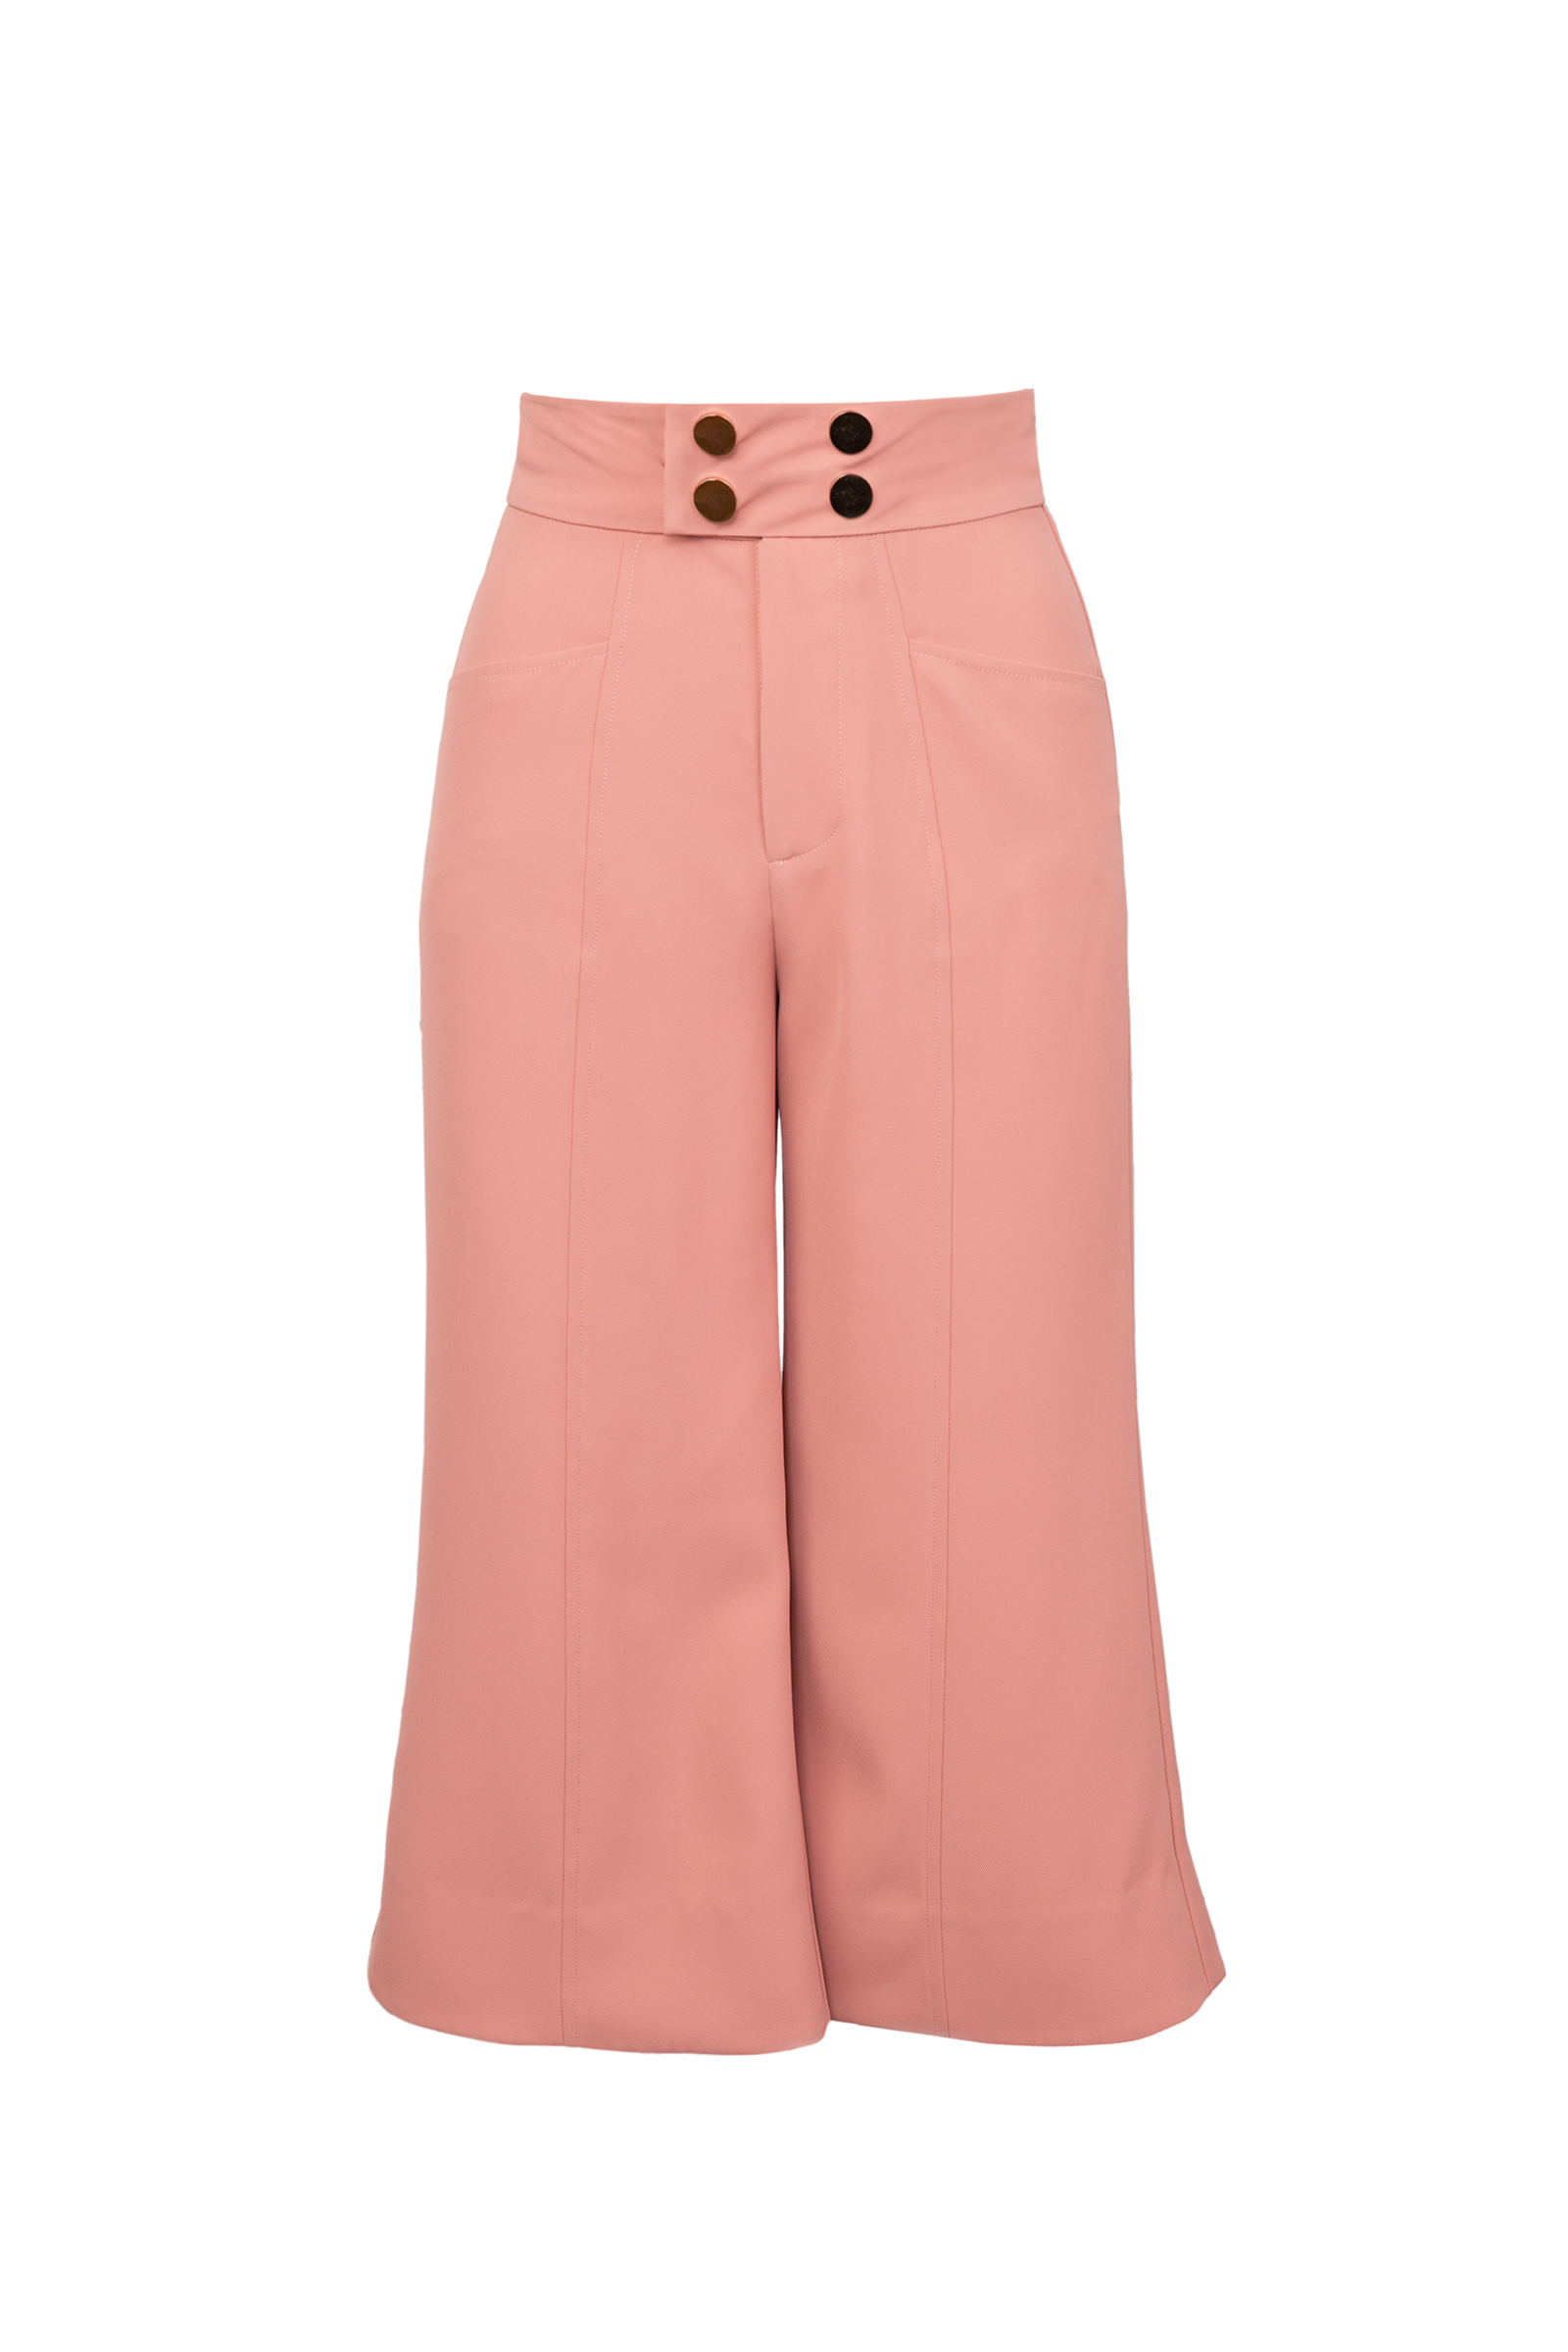 Coral Cropped Pants by J.ING LA Fashion clothing for women